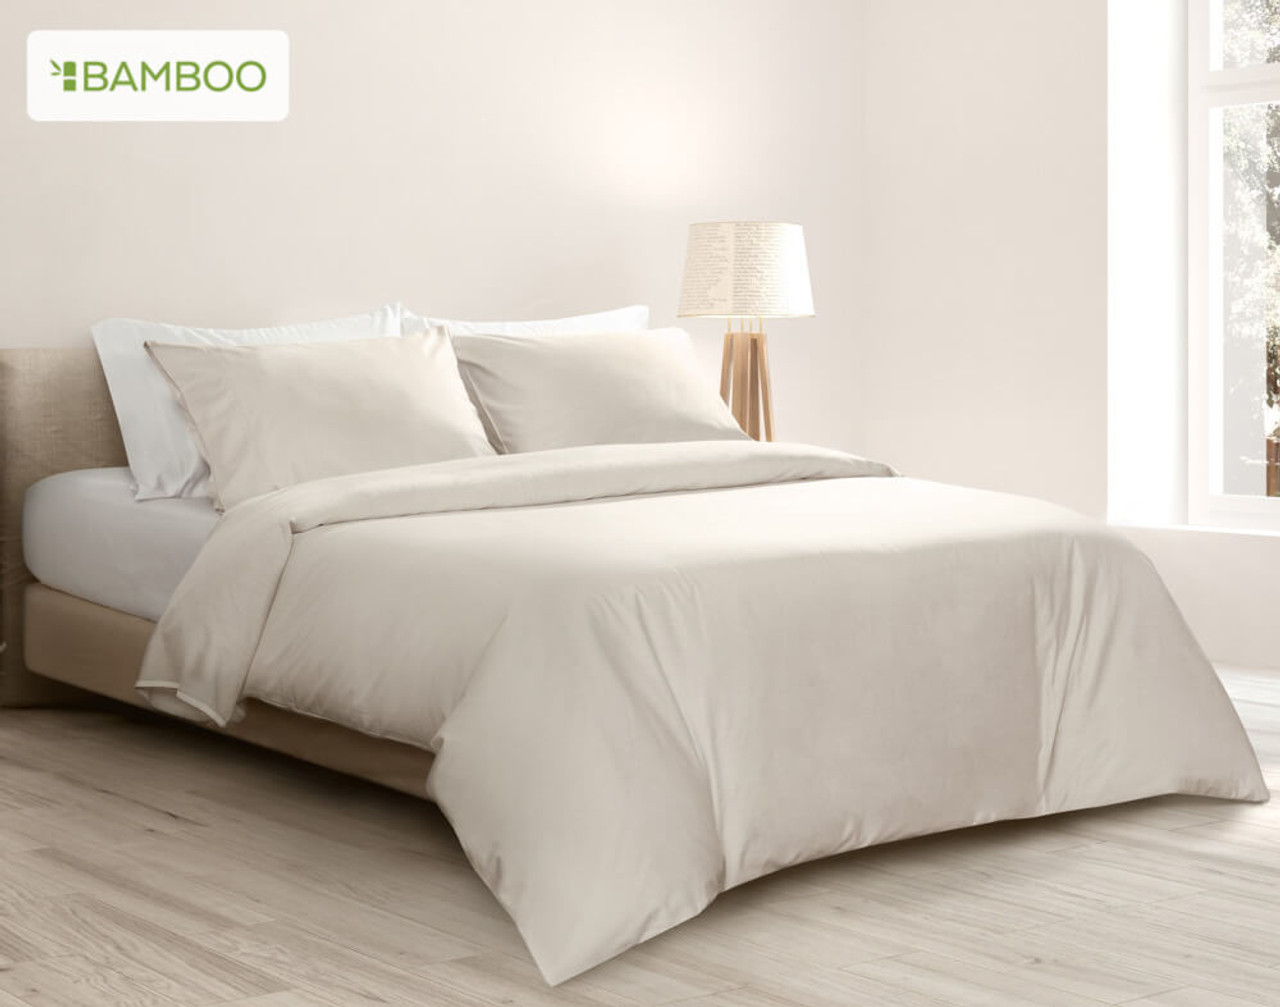 Bamboo Cotton Duvet Cover in Driftwood, a creamy off-white.